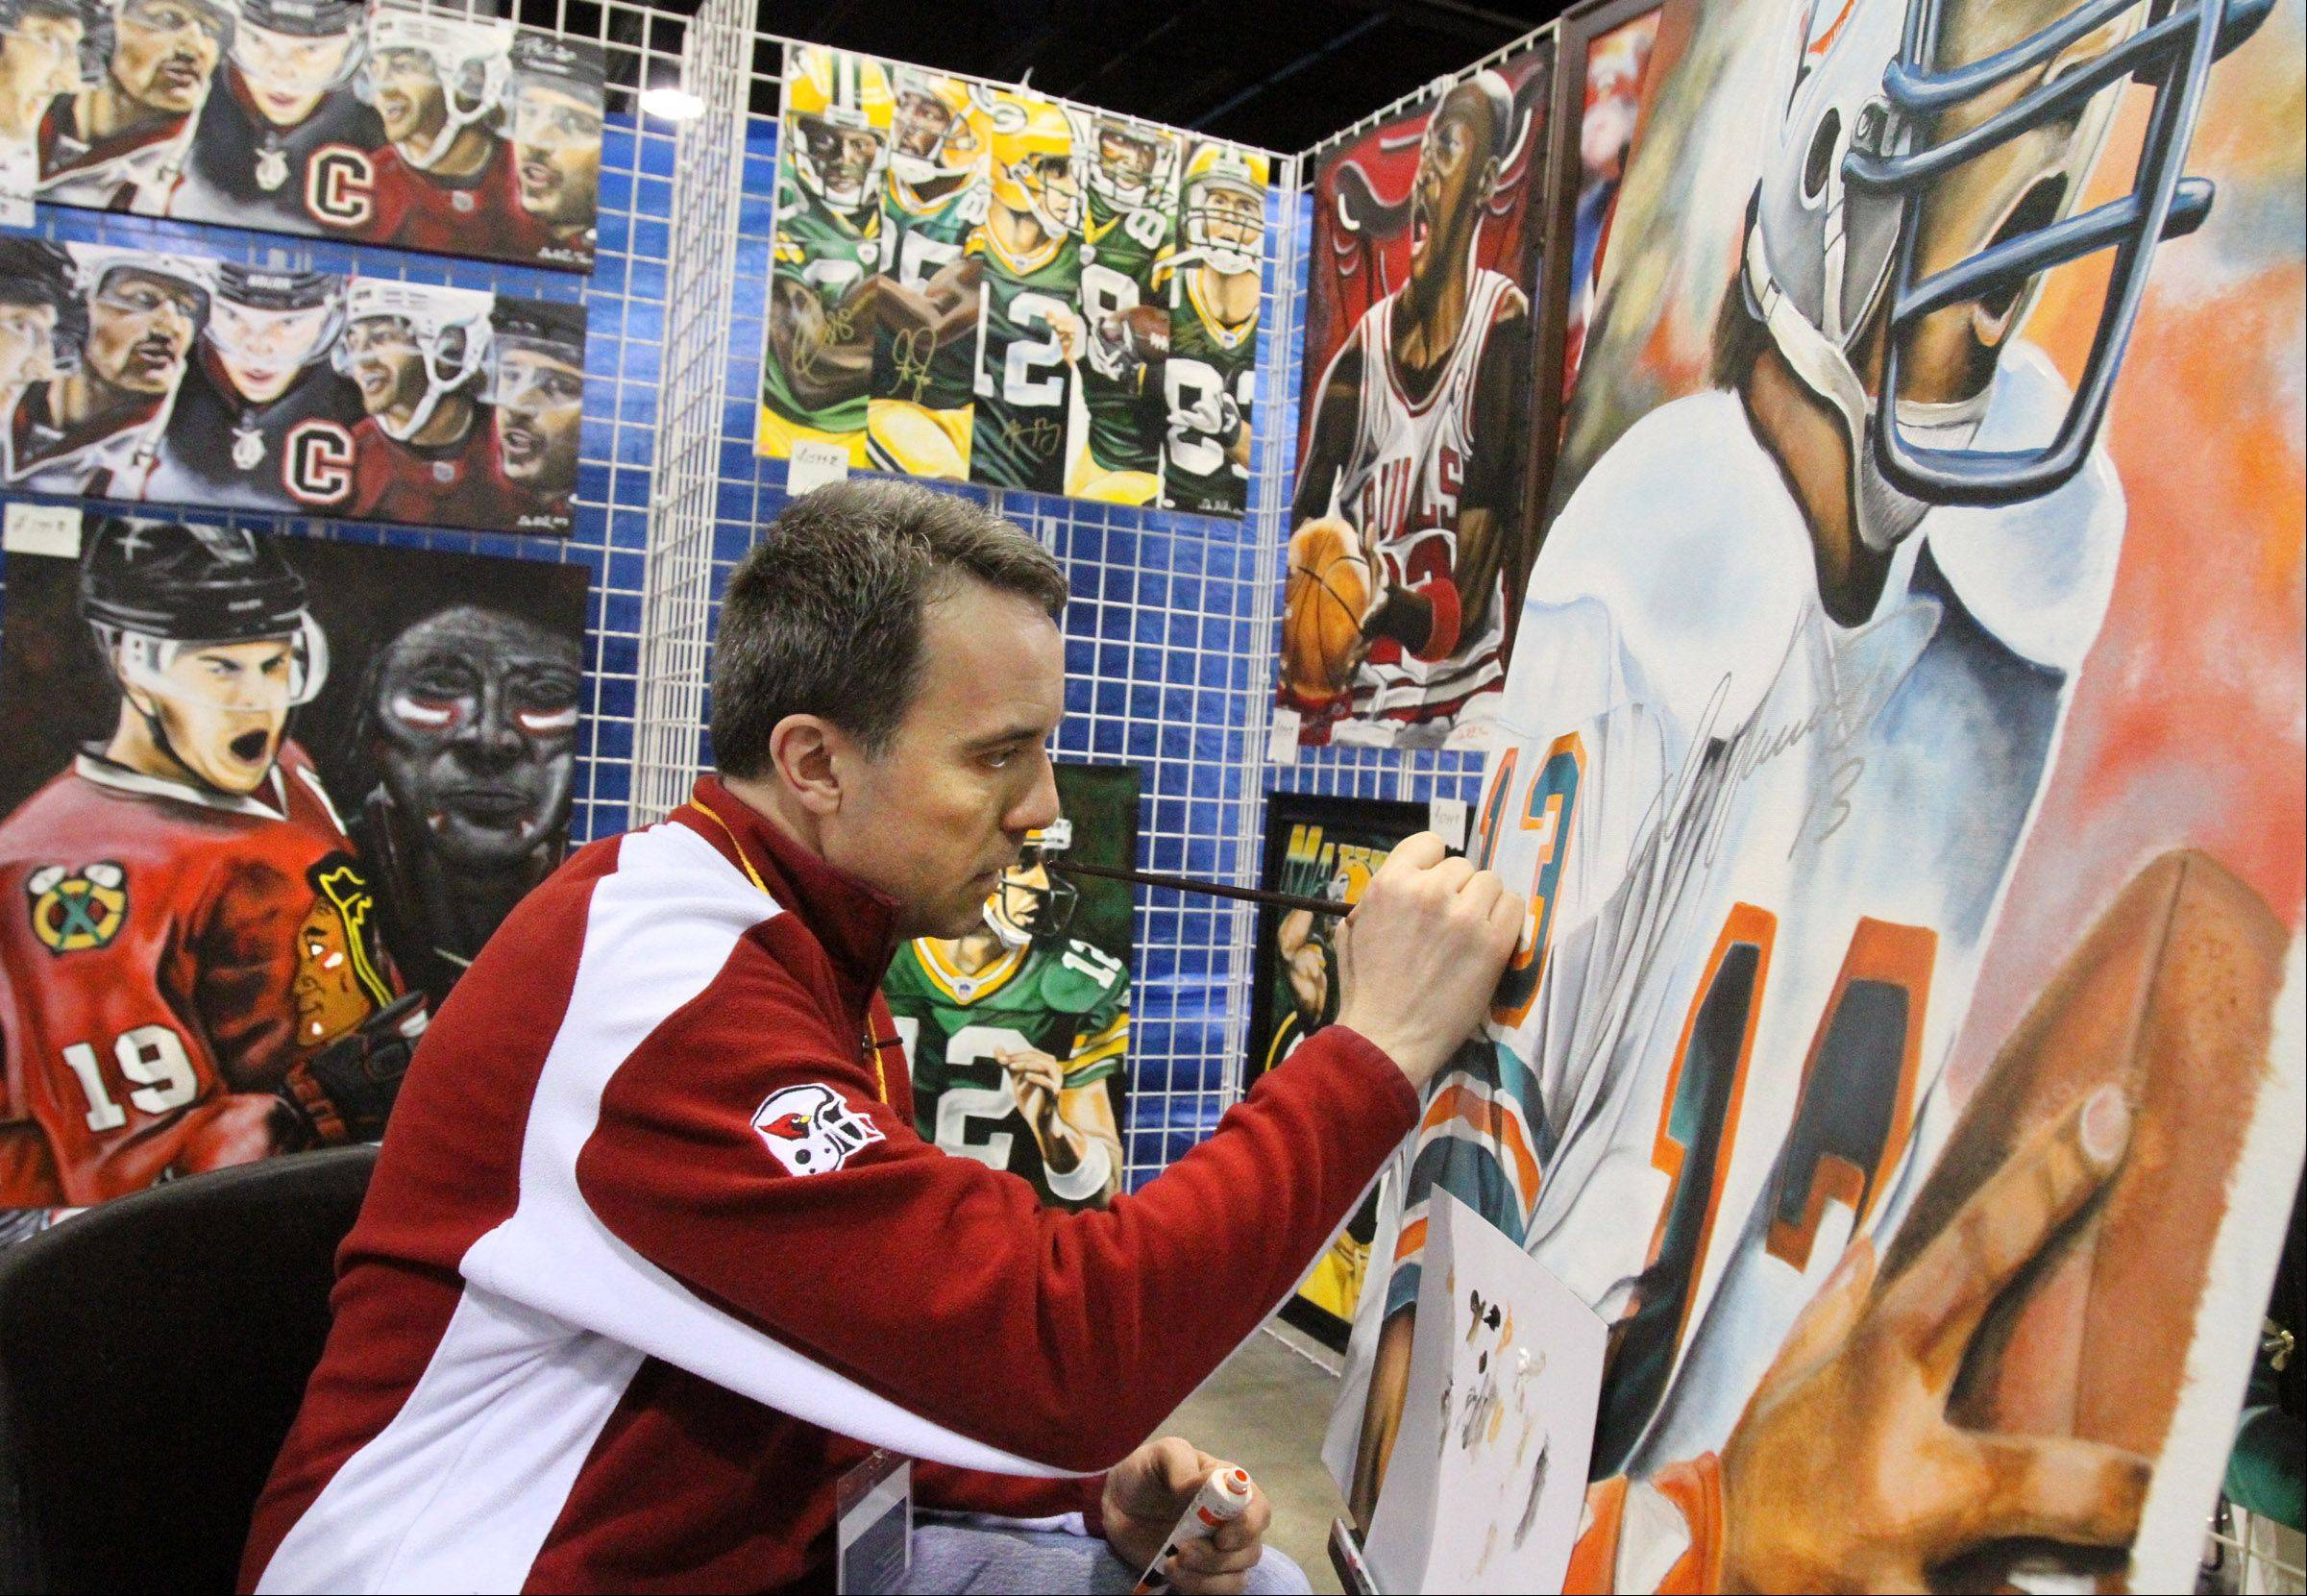 Dan St. Clair, of Davis Junction, Ill., paints sports figures at the 46th annual Sun-Times Sports Collectibles Show Sunday at the Donald E. Stevens Convention Center in Rosemont. St. Clair said his favorite sport to paint is football, and he has painted thousands of pieces.